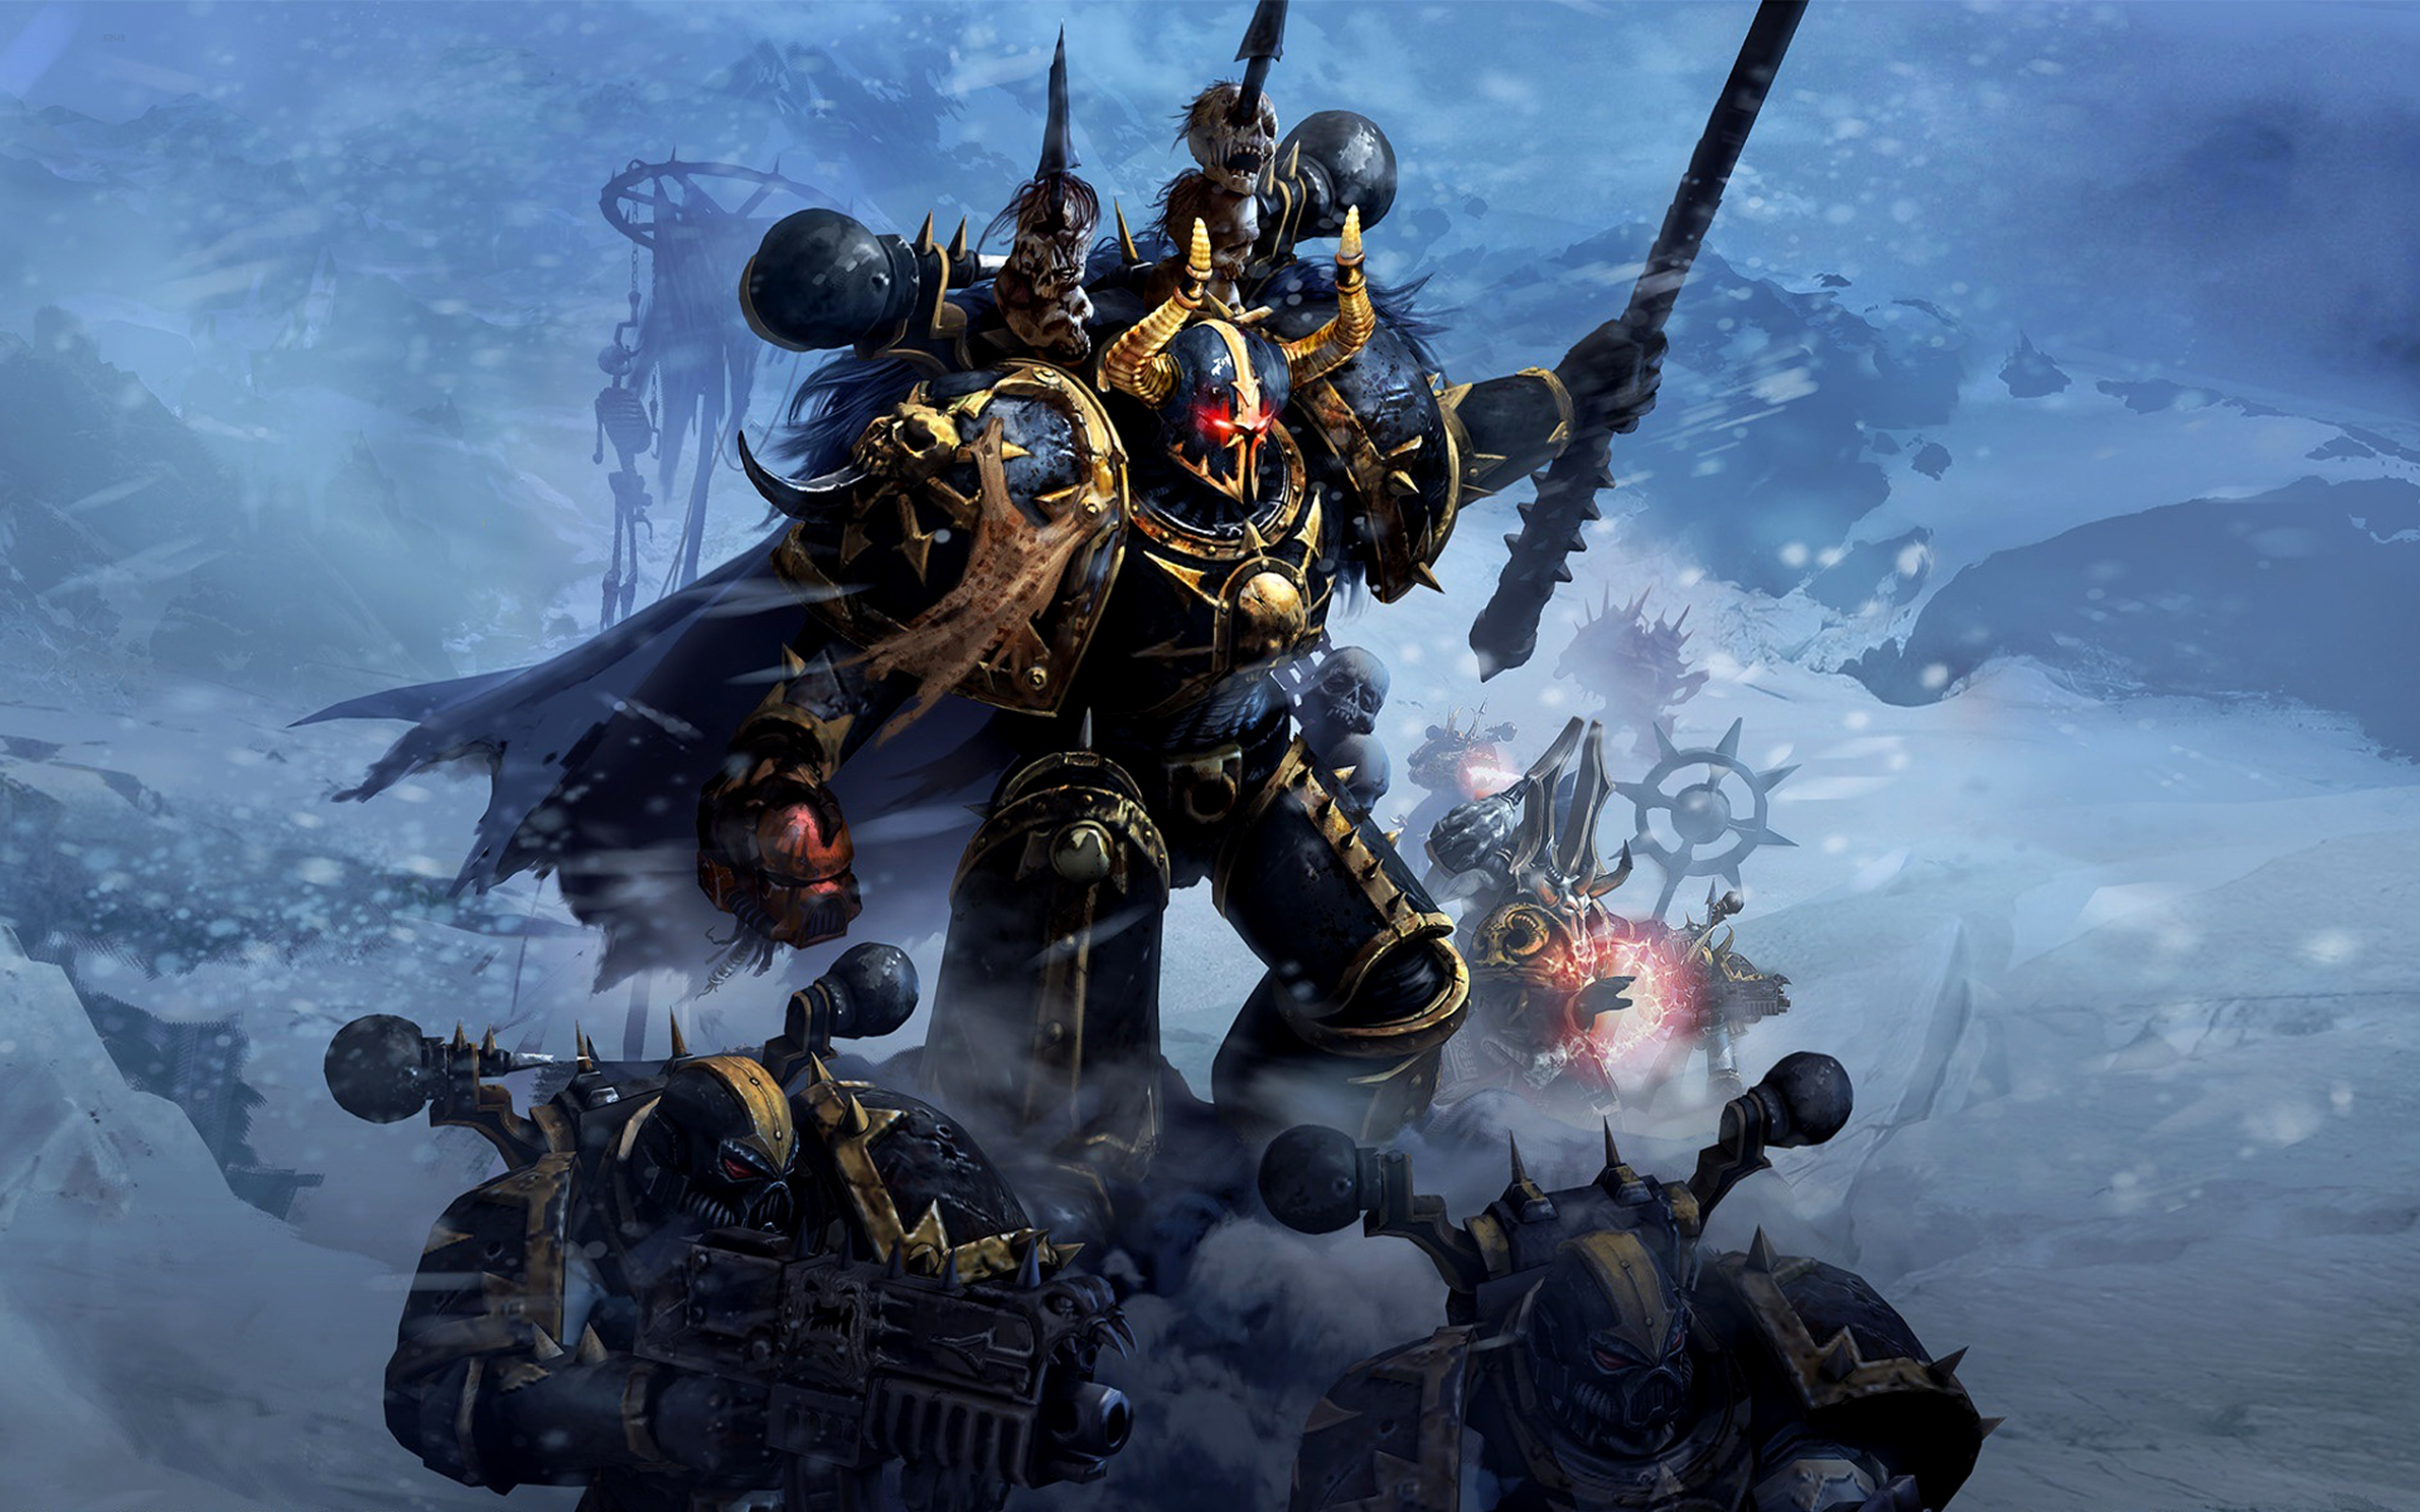 525 warhammer hd wallpapers | background images - wallpaper abyss